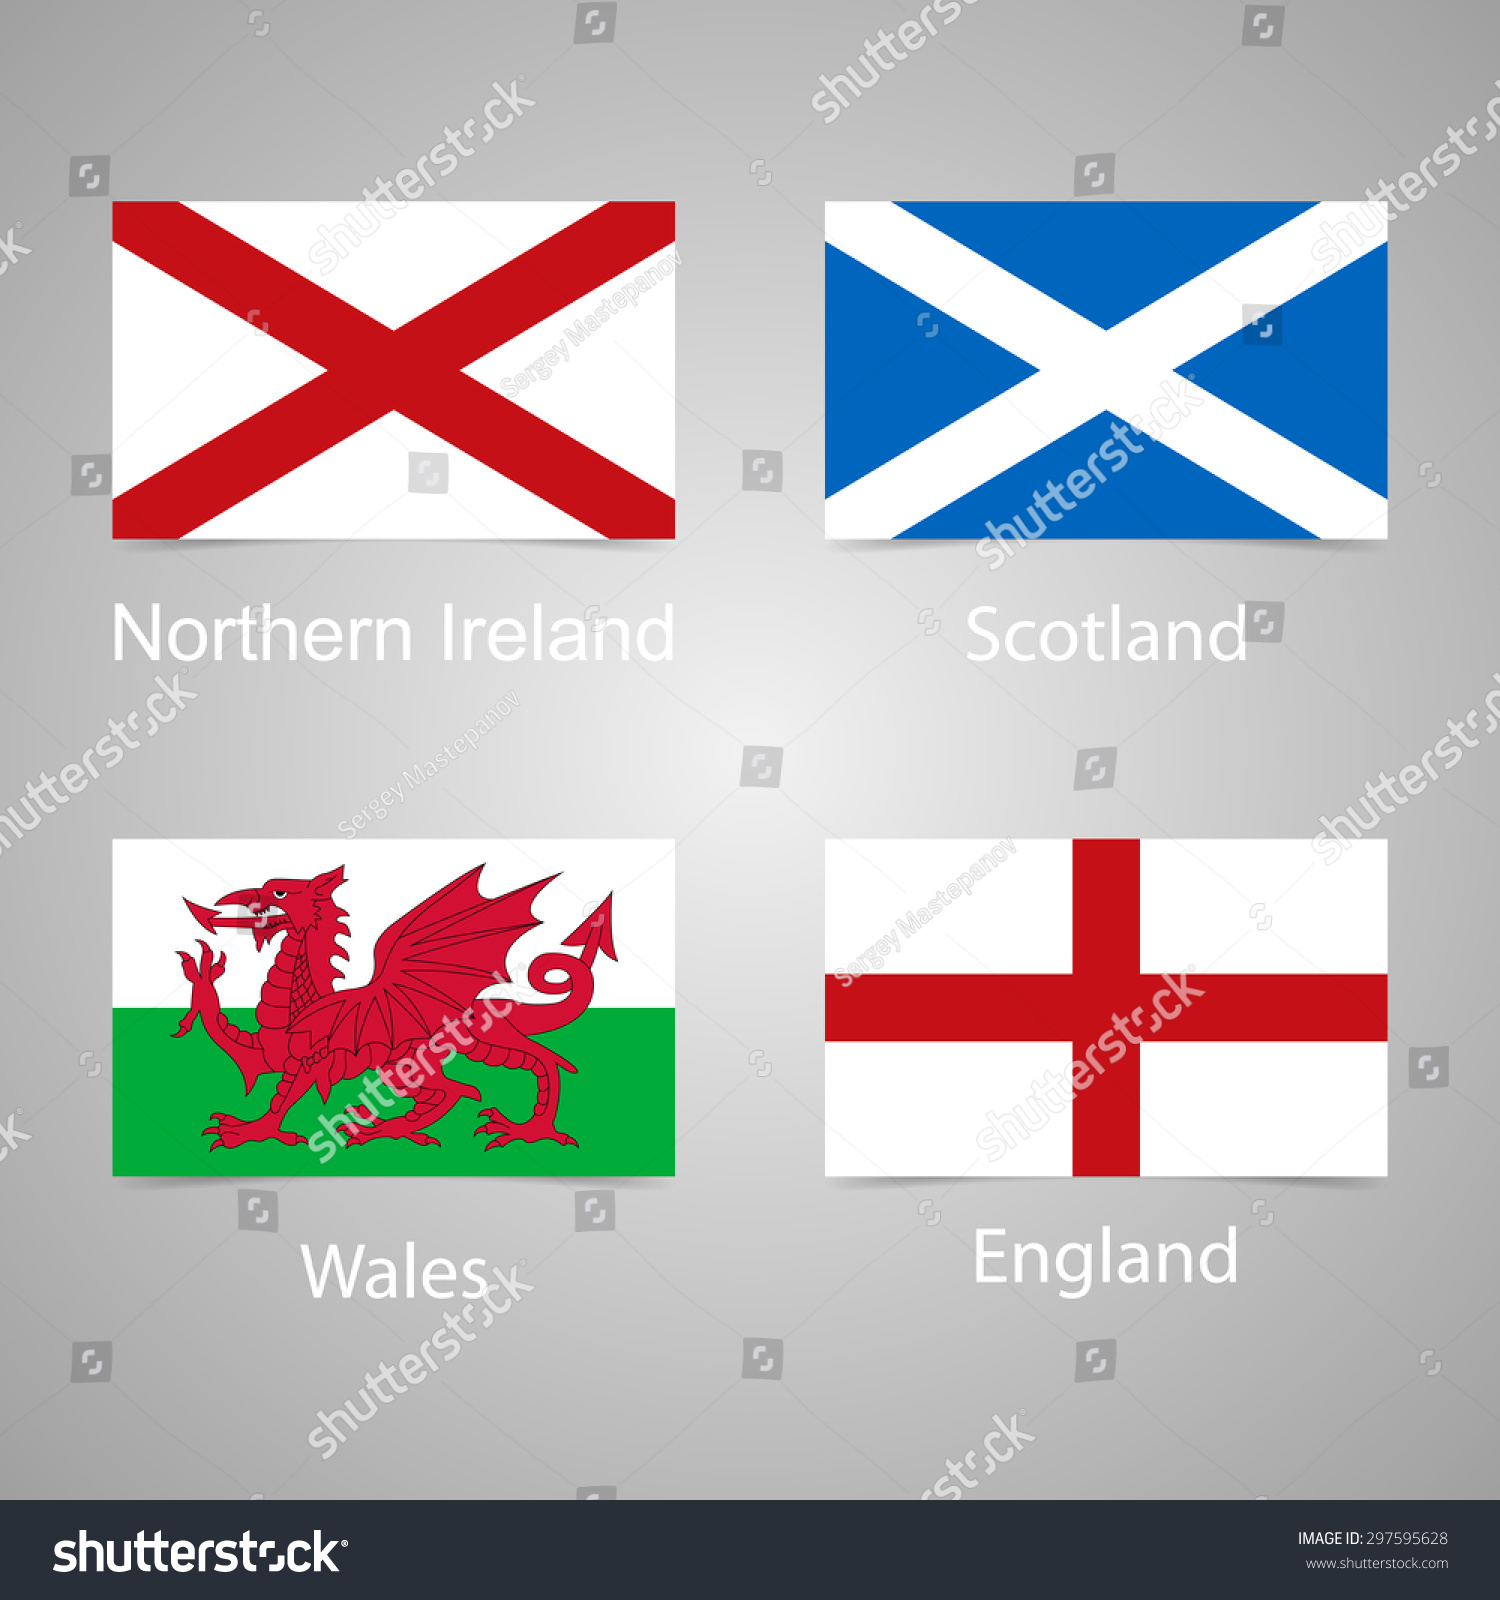 The Flags Of England Scotland Wales And Northern Ireland